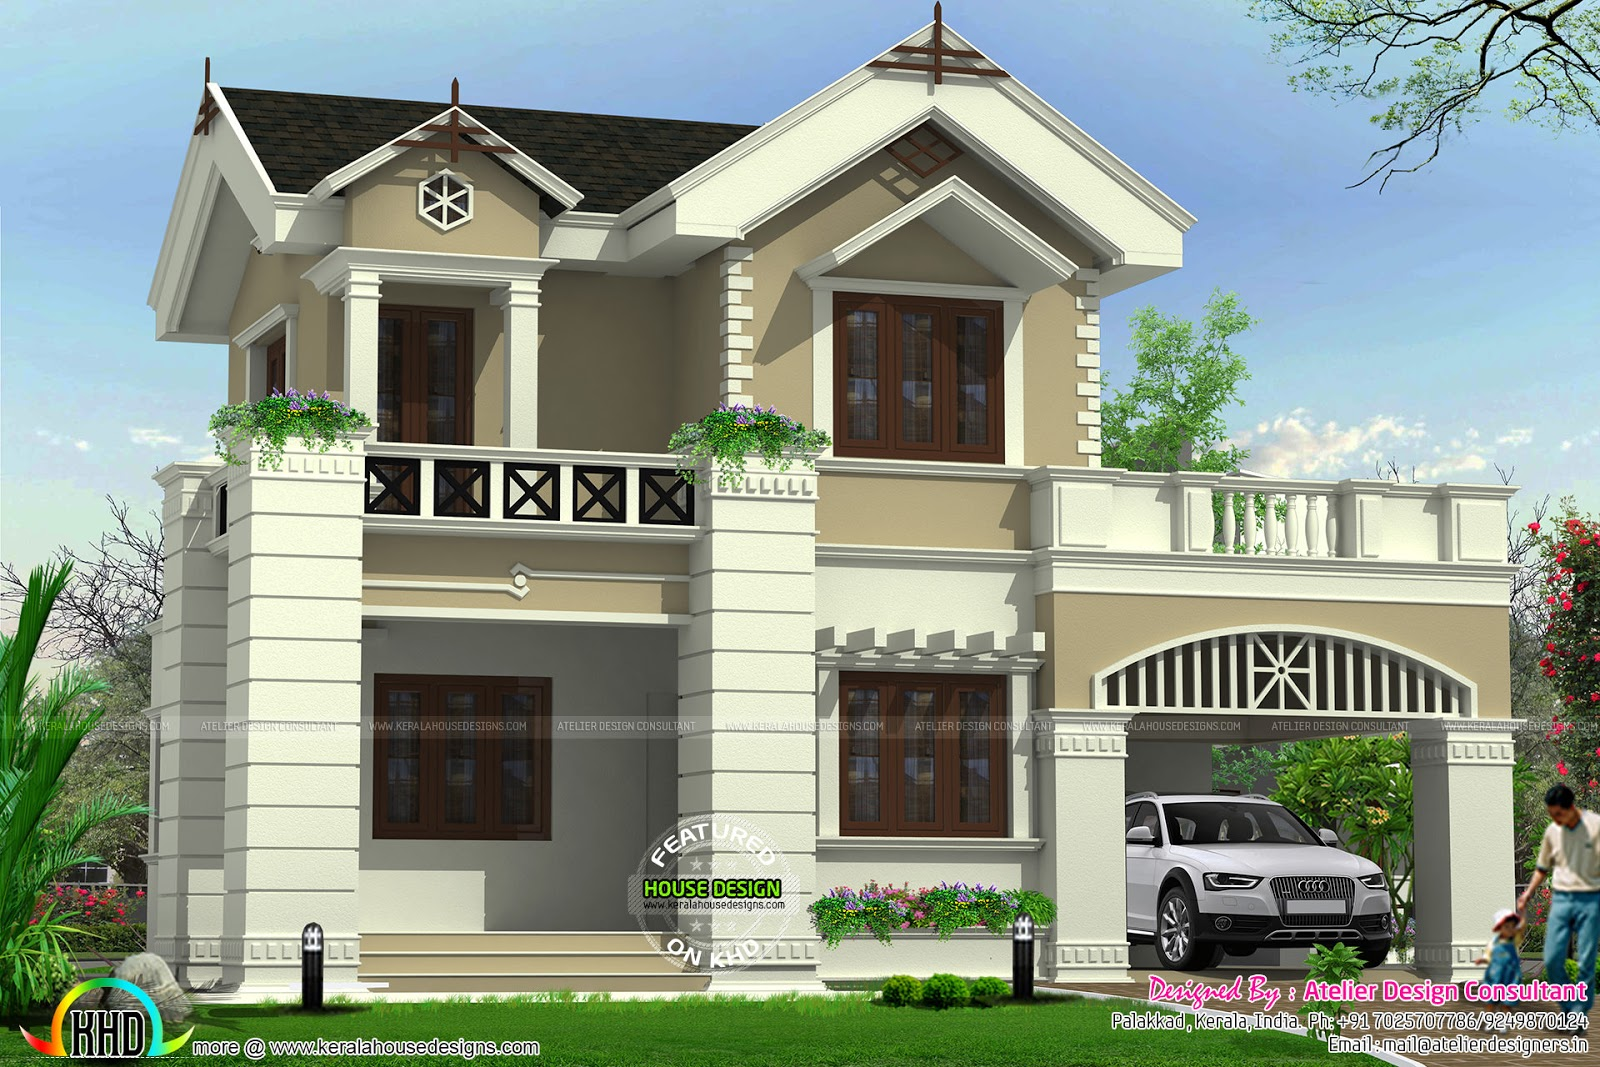 Cute victorian model home kerala home design and floor plans for Residential remodeling